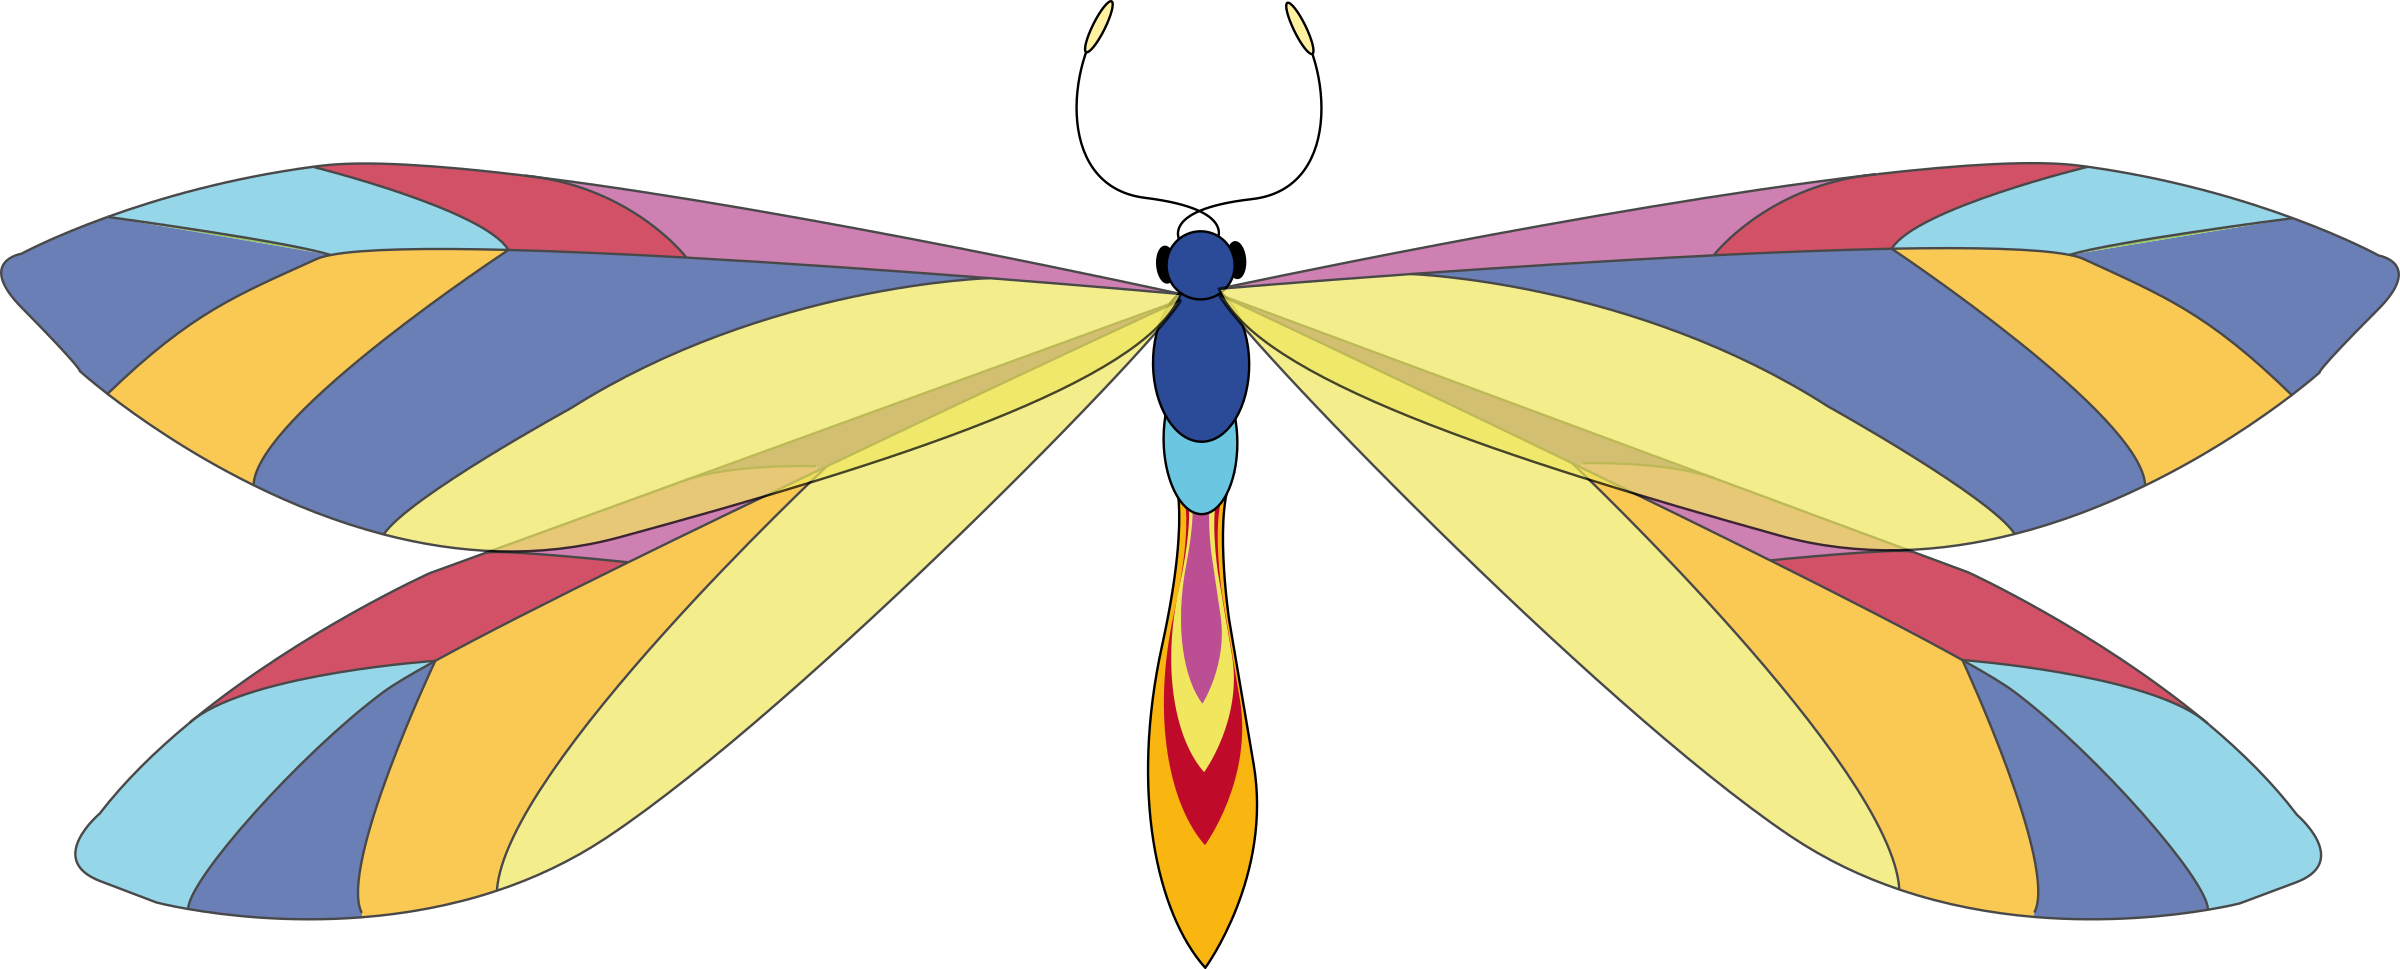 banner free library Big image png. Dragonfly clipart